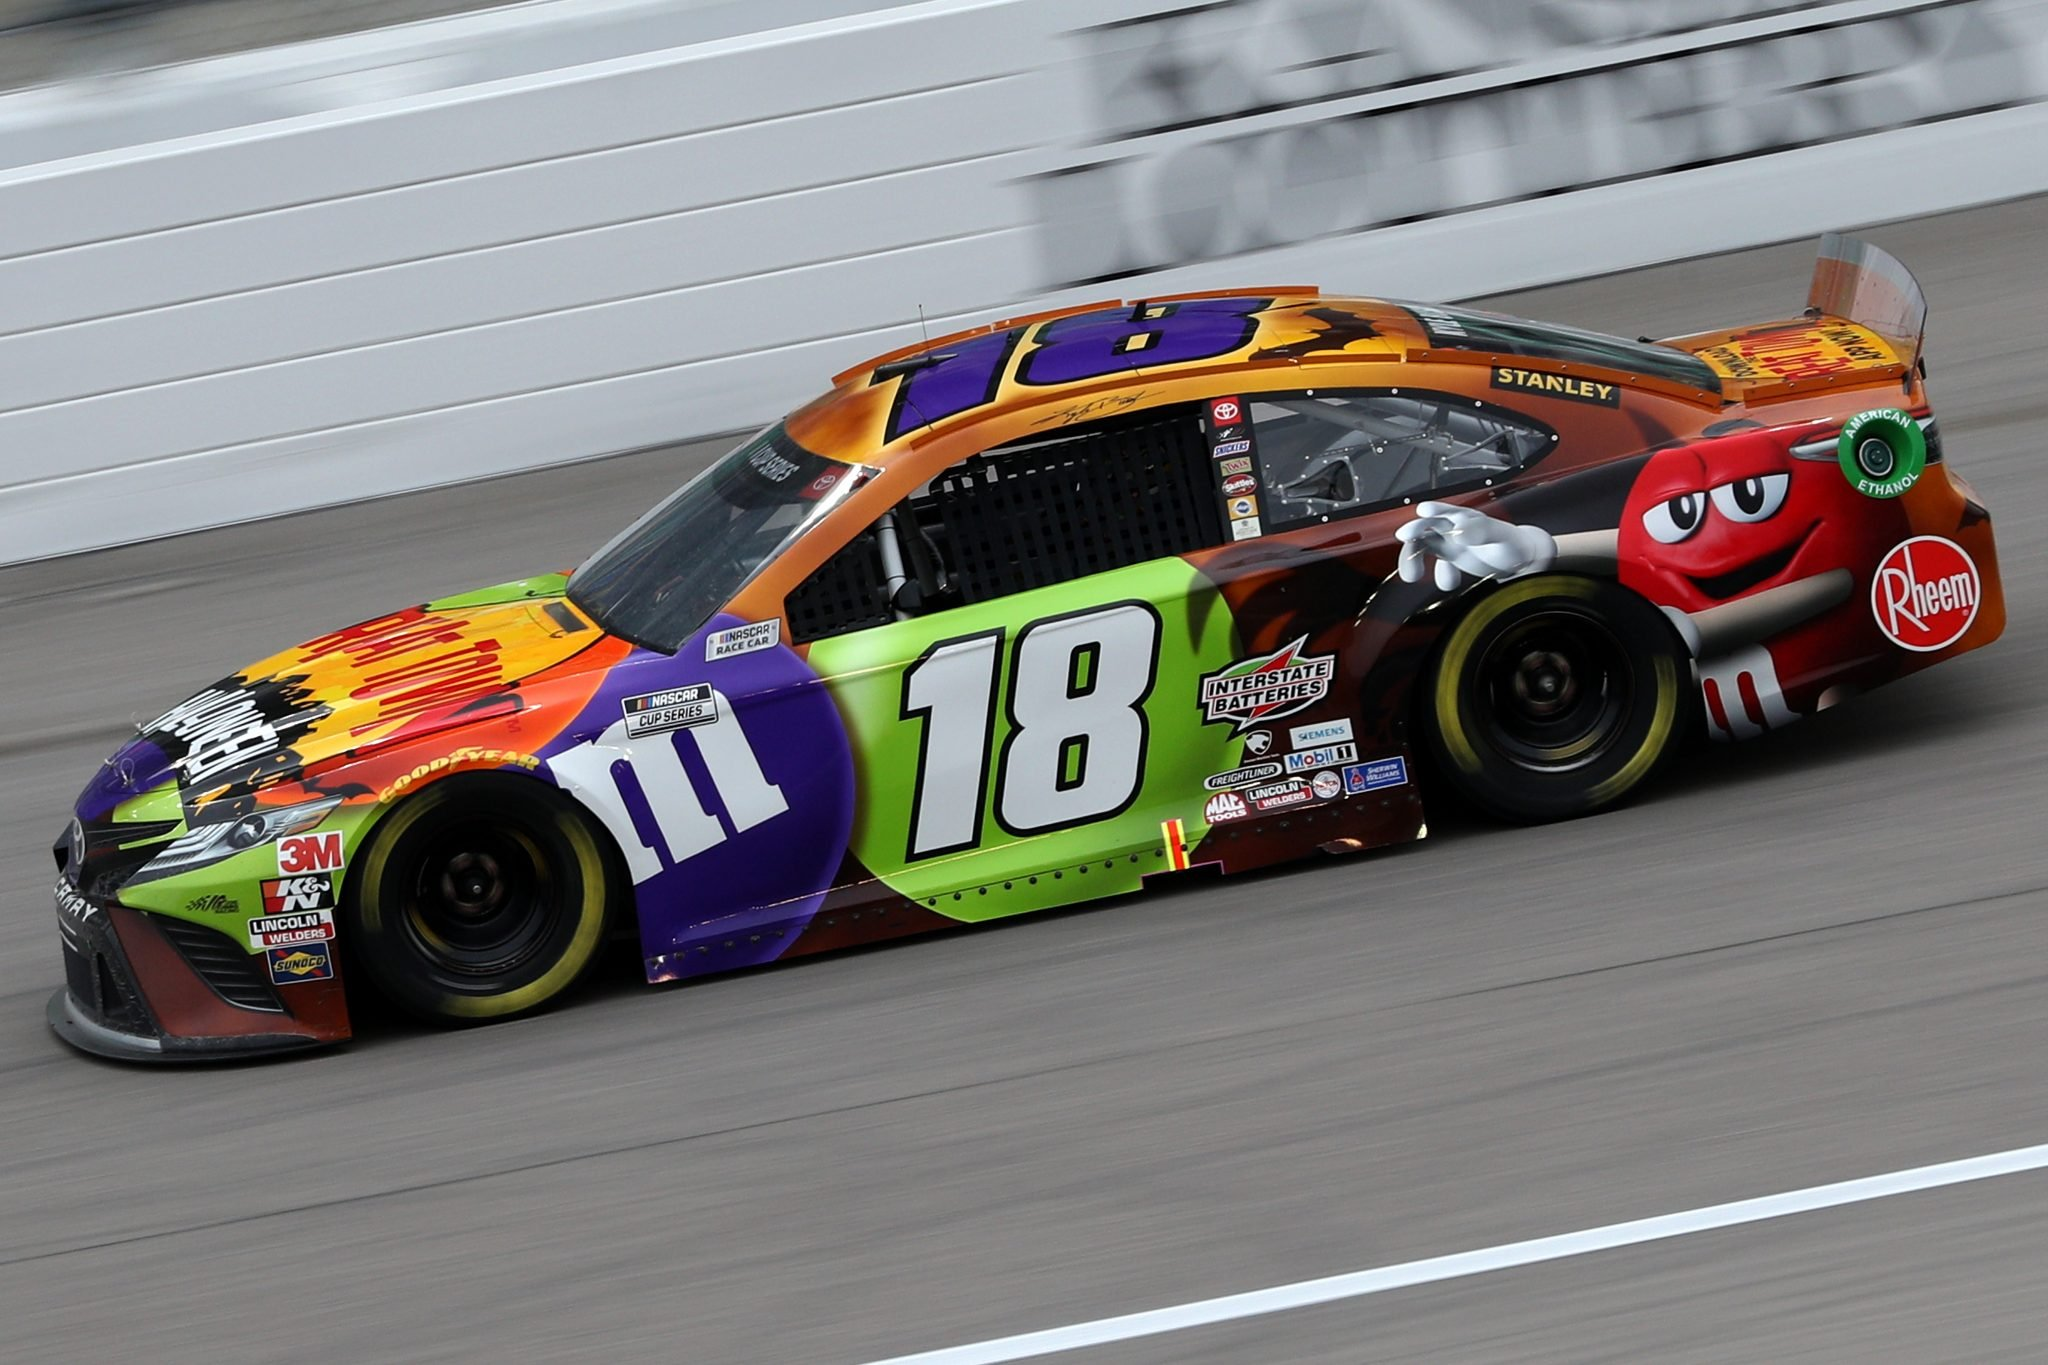 KANSAS CITY, KANSAS - OCTOBER 18: Kyle Busch, driver of the #18 M&M's Halloween Toyota, drives during the NASCAR Cup Series Hollywood Casino 400 at Kansas Speedway on October 18, 2020 in Kansas City, Kansas. (Photo by Chris Graythen/Getty Images) | Getty Images